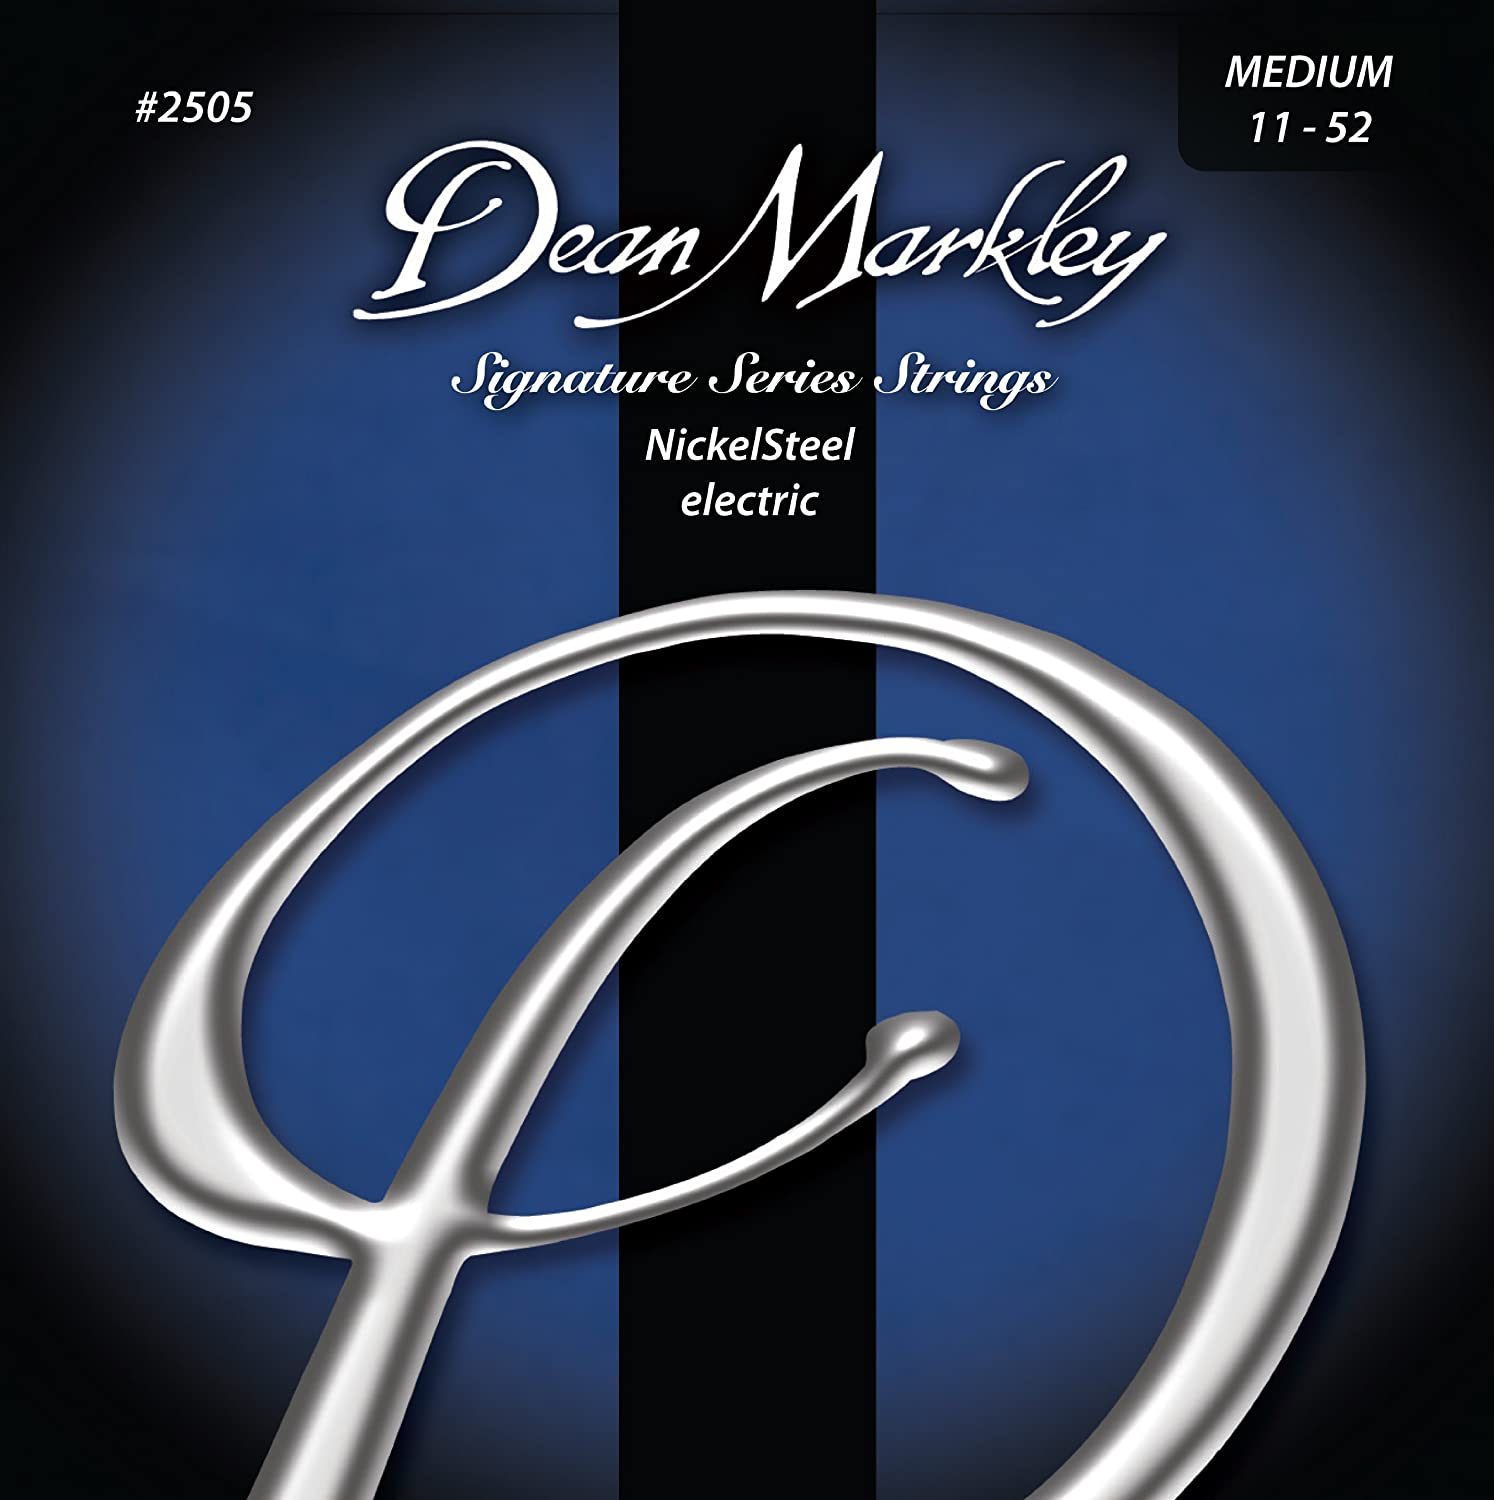 Dean Markley 2505 Medium Signature Series Electric Guitar Strings 0.11-0.52